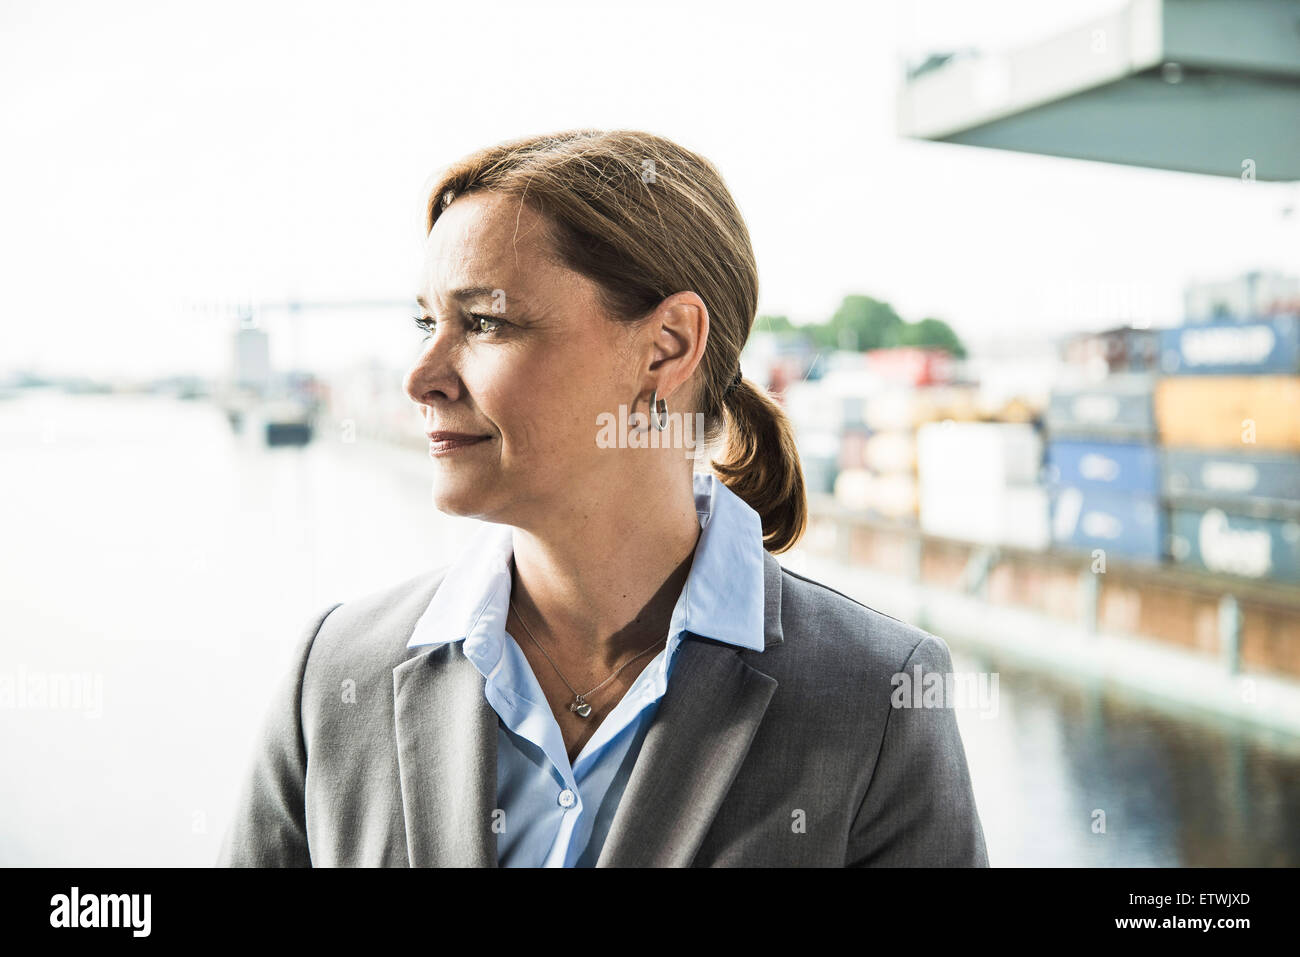 Businesswoman at container harbor looking sideways - Stock Image